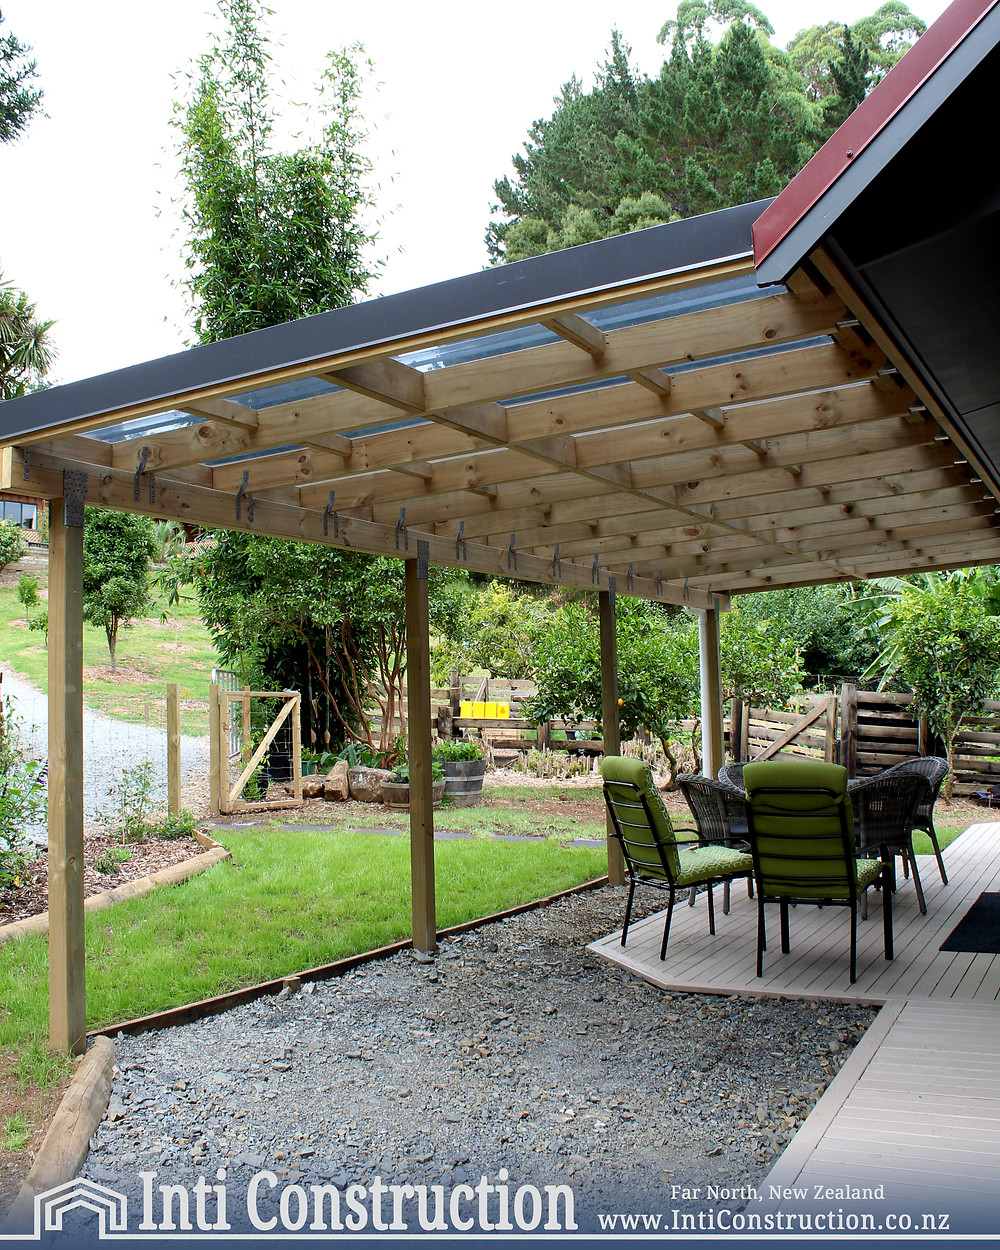 Inti Construction Quality Building Far North, NZ outdoor loving space